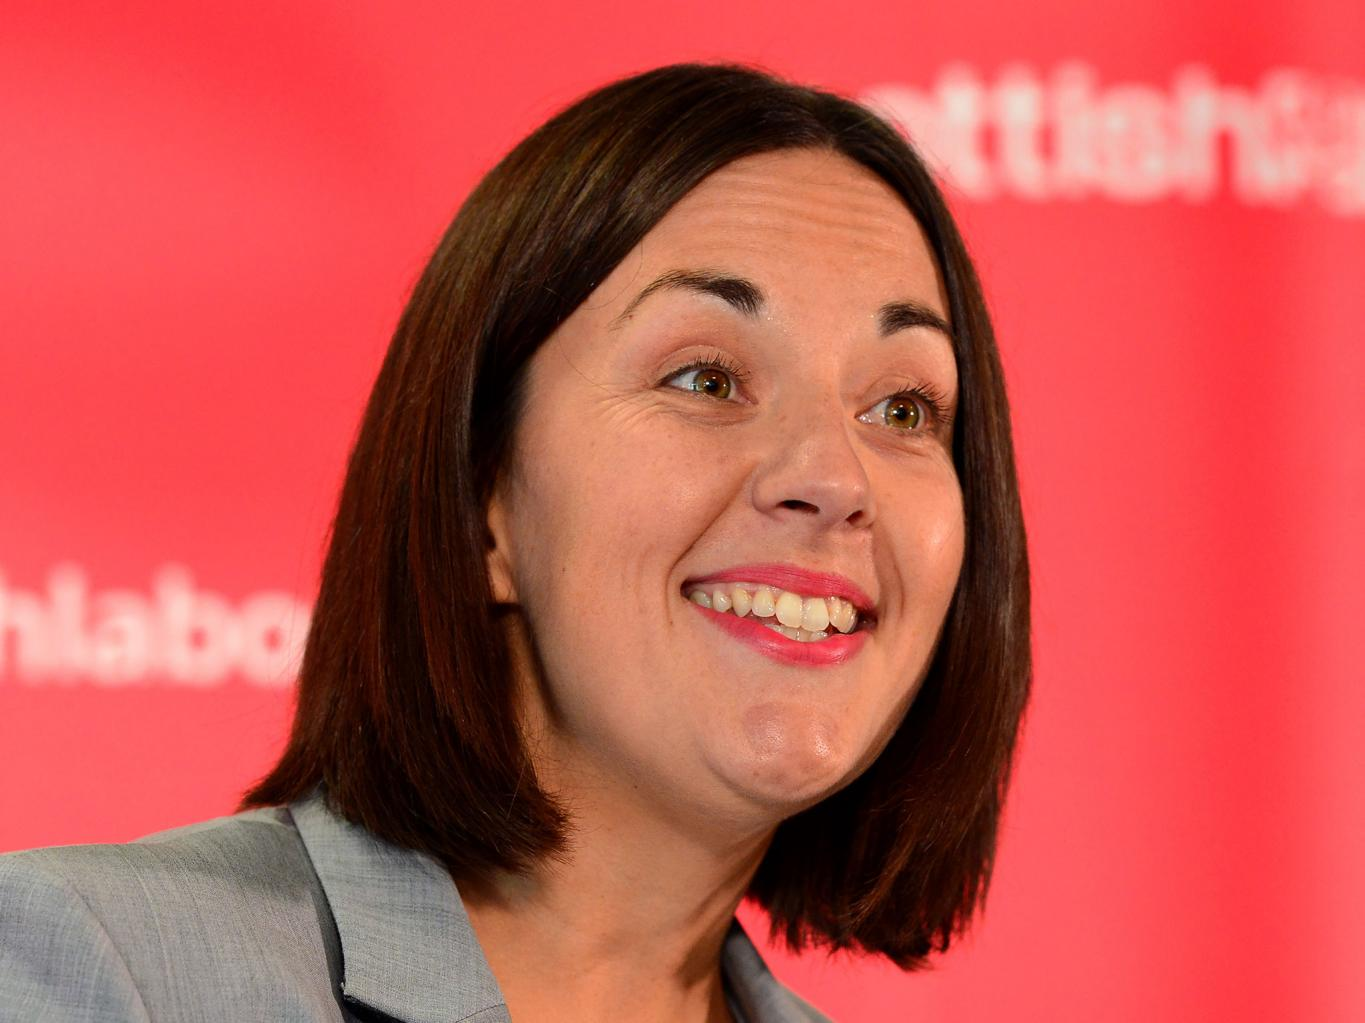 Kezia Dugdale images and wallpapers